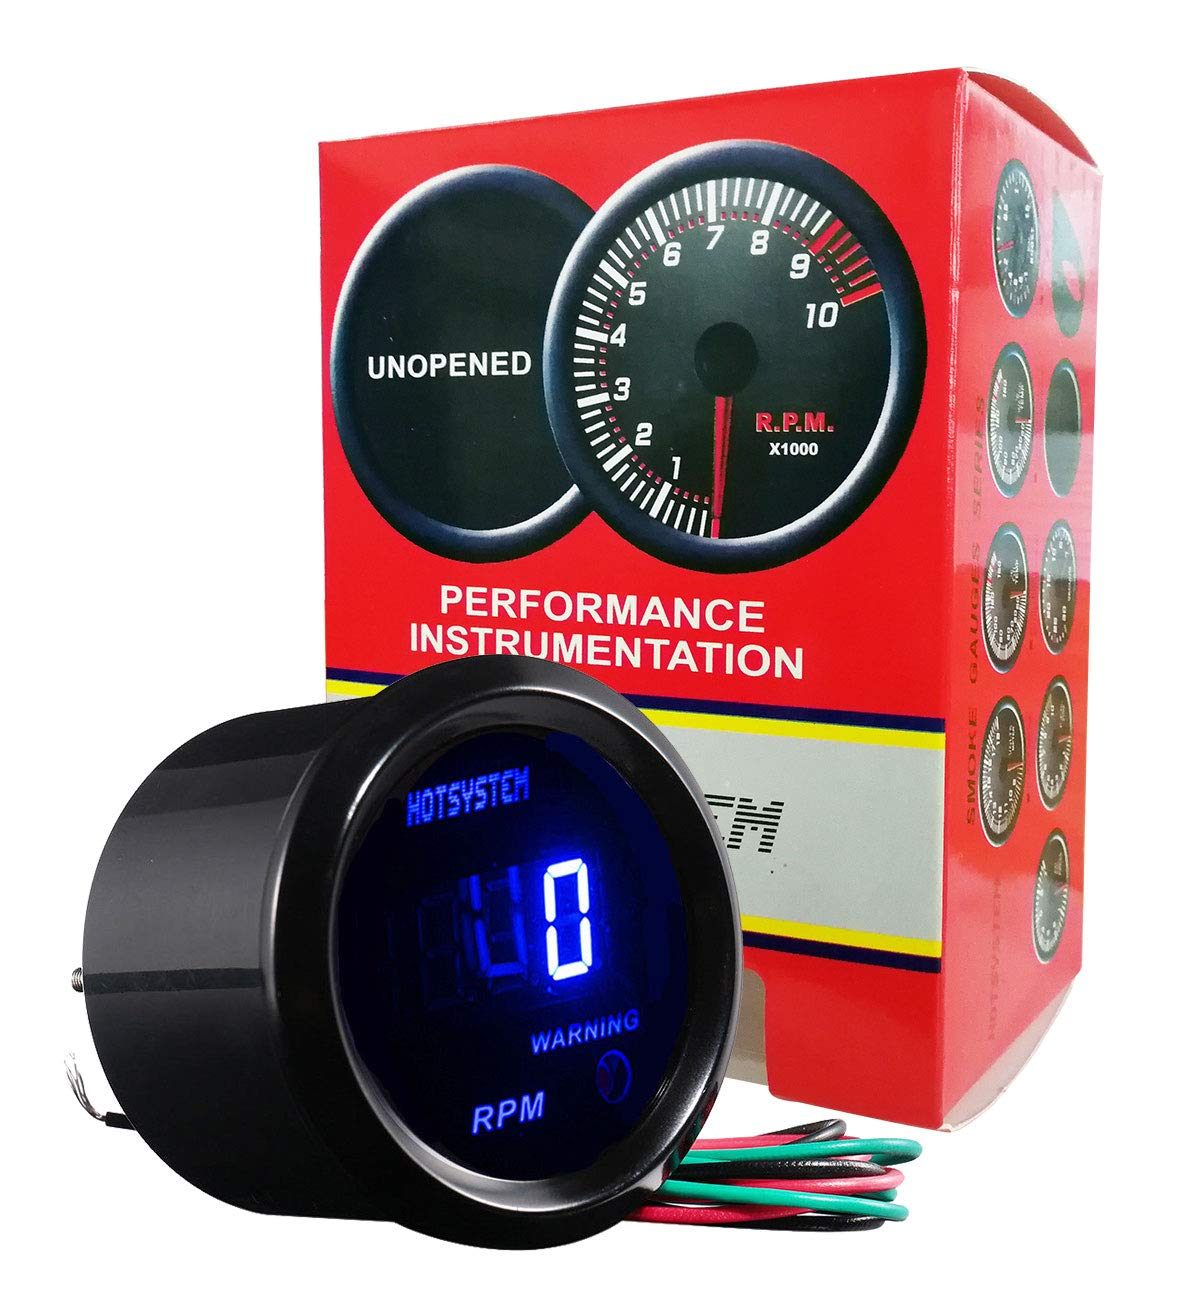 HOTSYSTEM New Universal Electronic Tachometer Tacho Gauge Meter Blue Digital LED 2inches 52mm 0-9999 RPM for 4 6 8 Cylinder Car Vehicle Automotive by HOTSYSTEM